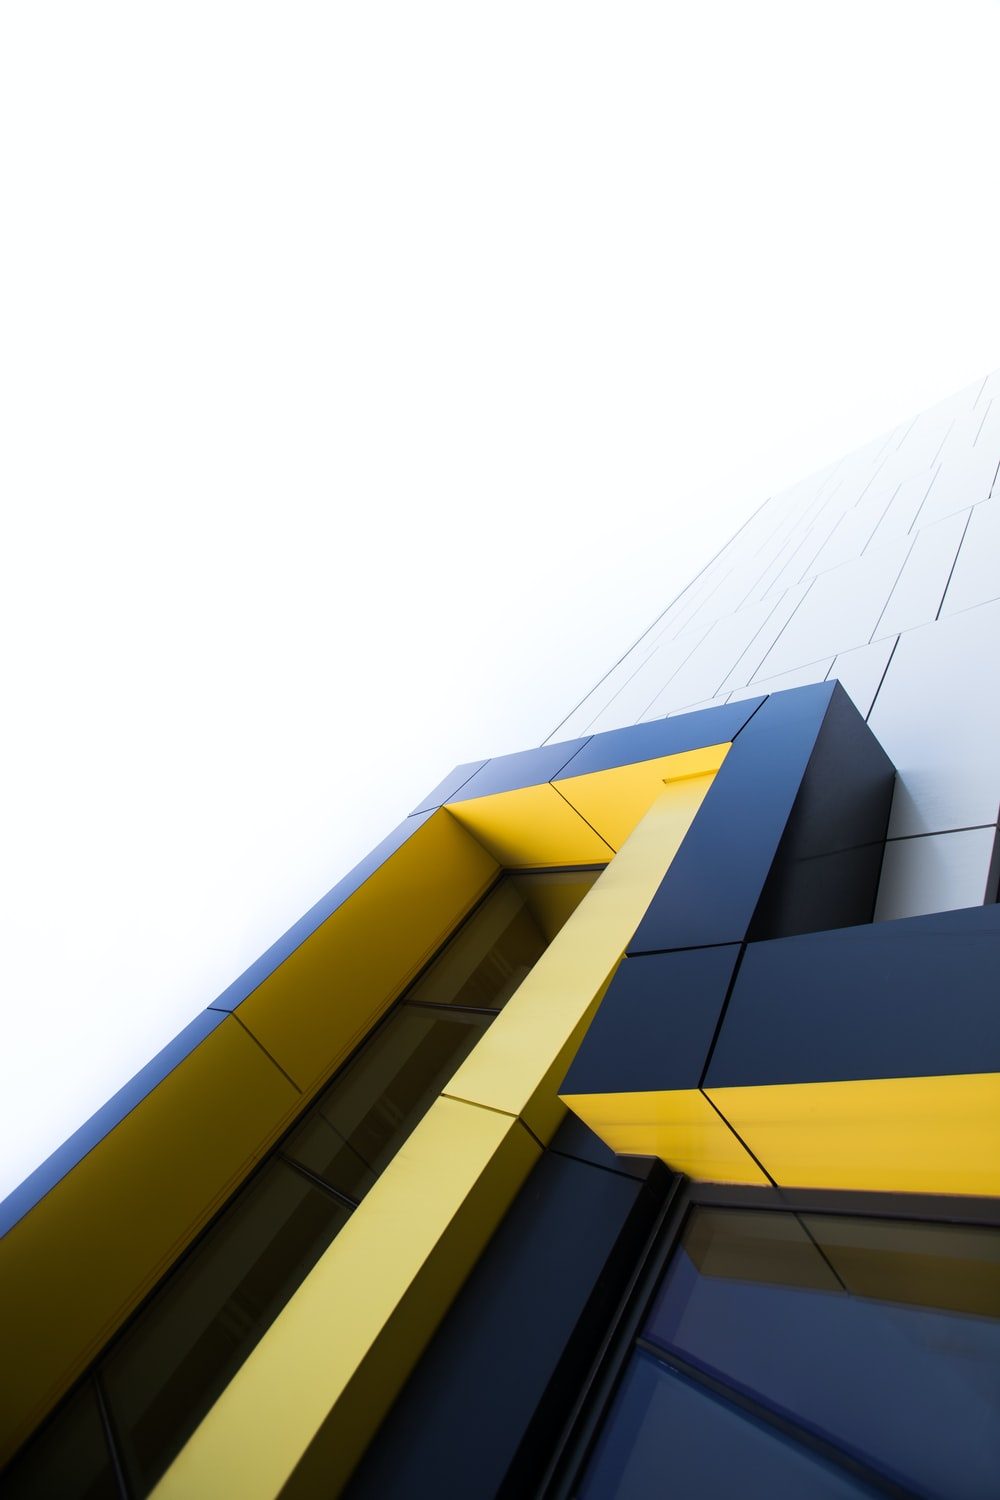 black and yellow building under white clouds